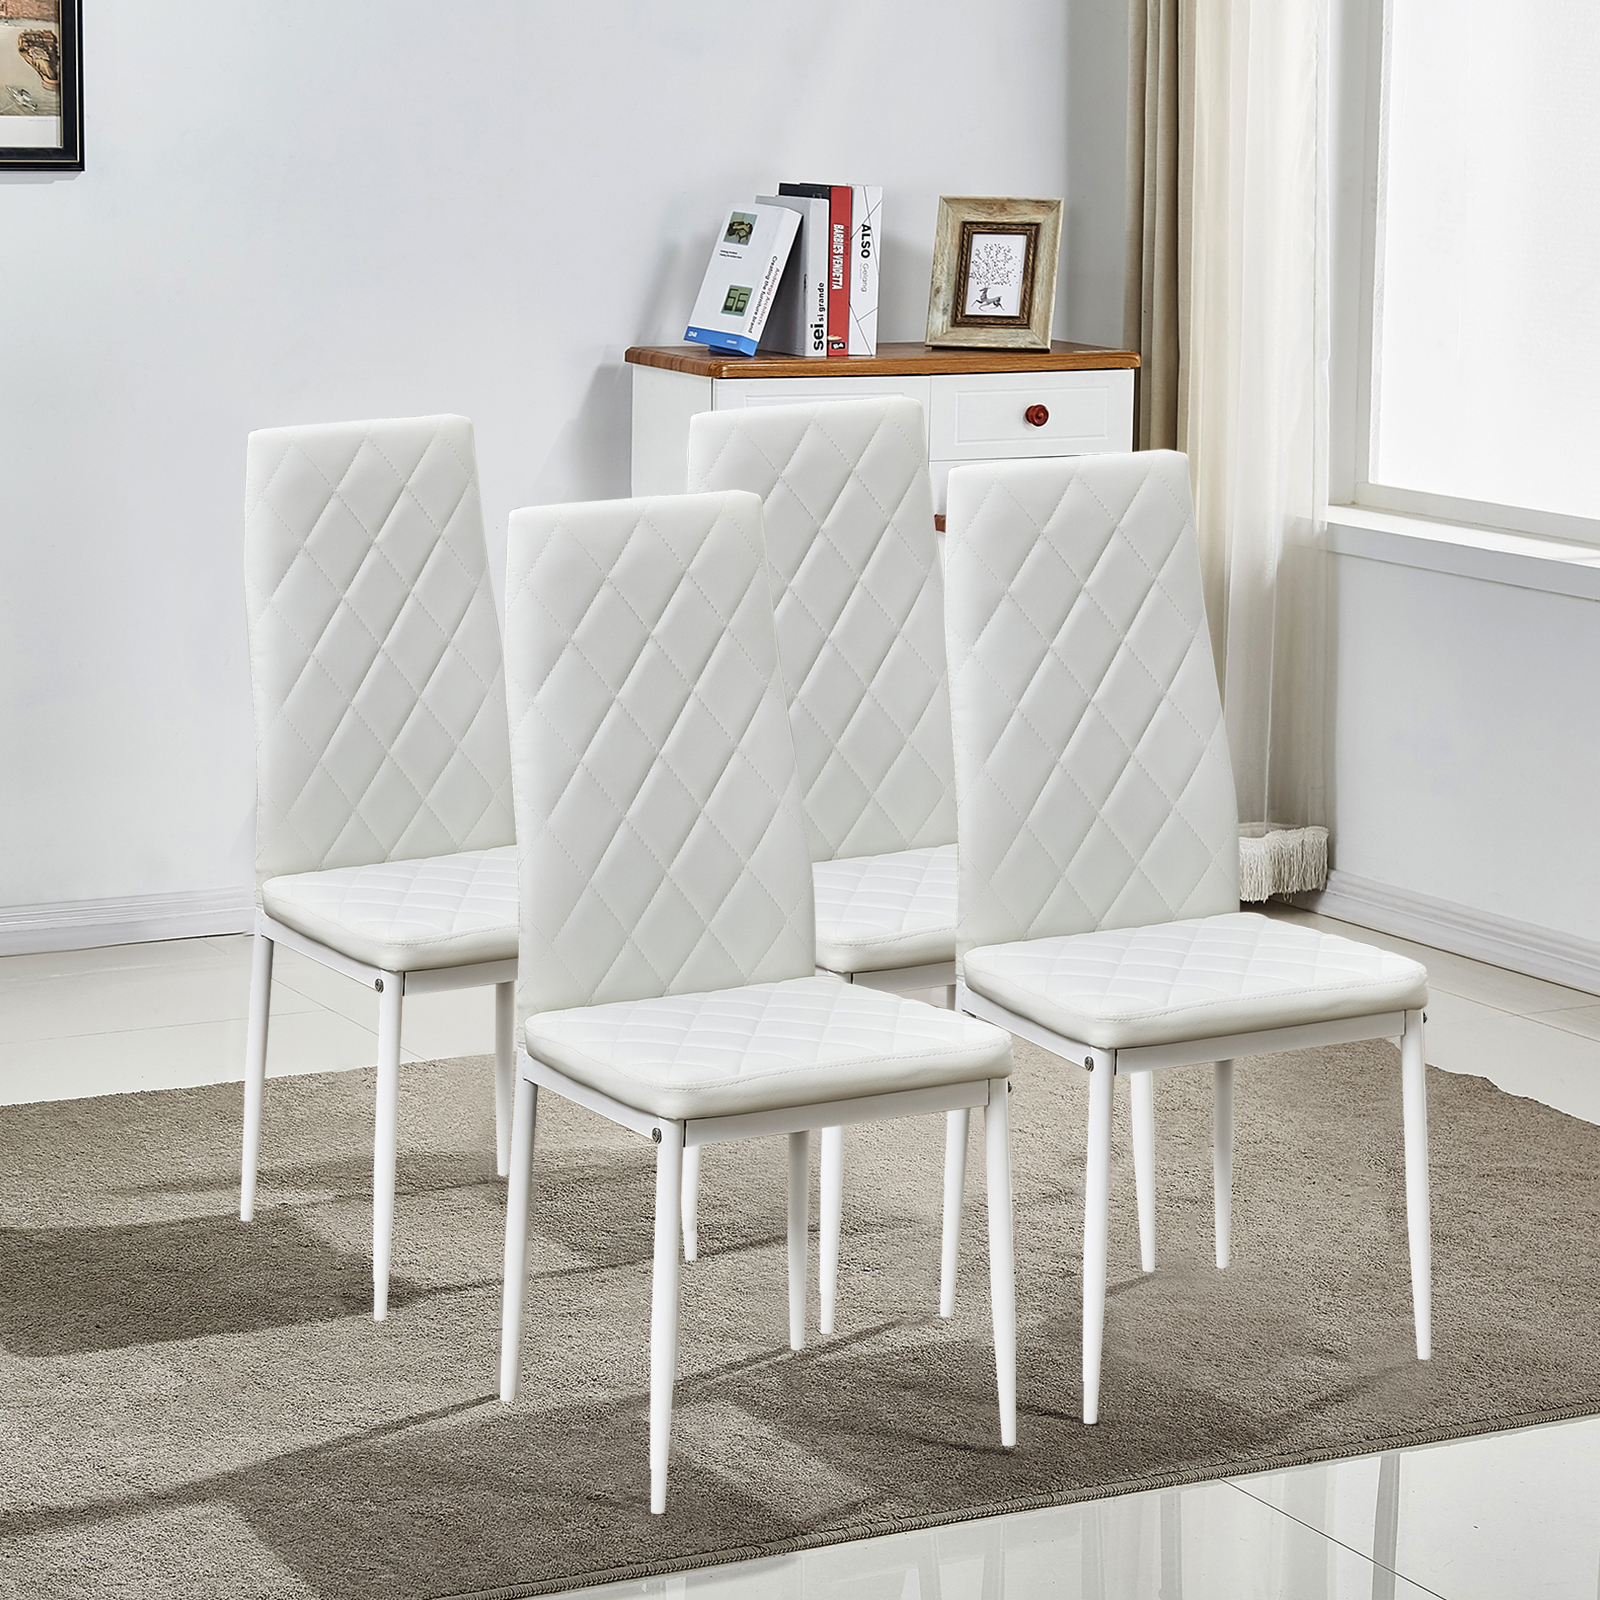 White Leather Dining Room Set: Set Of 4 White Stunning Dining Chairs Comfortable Leather